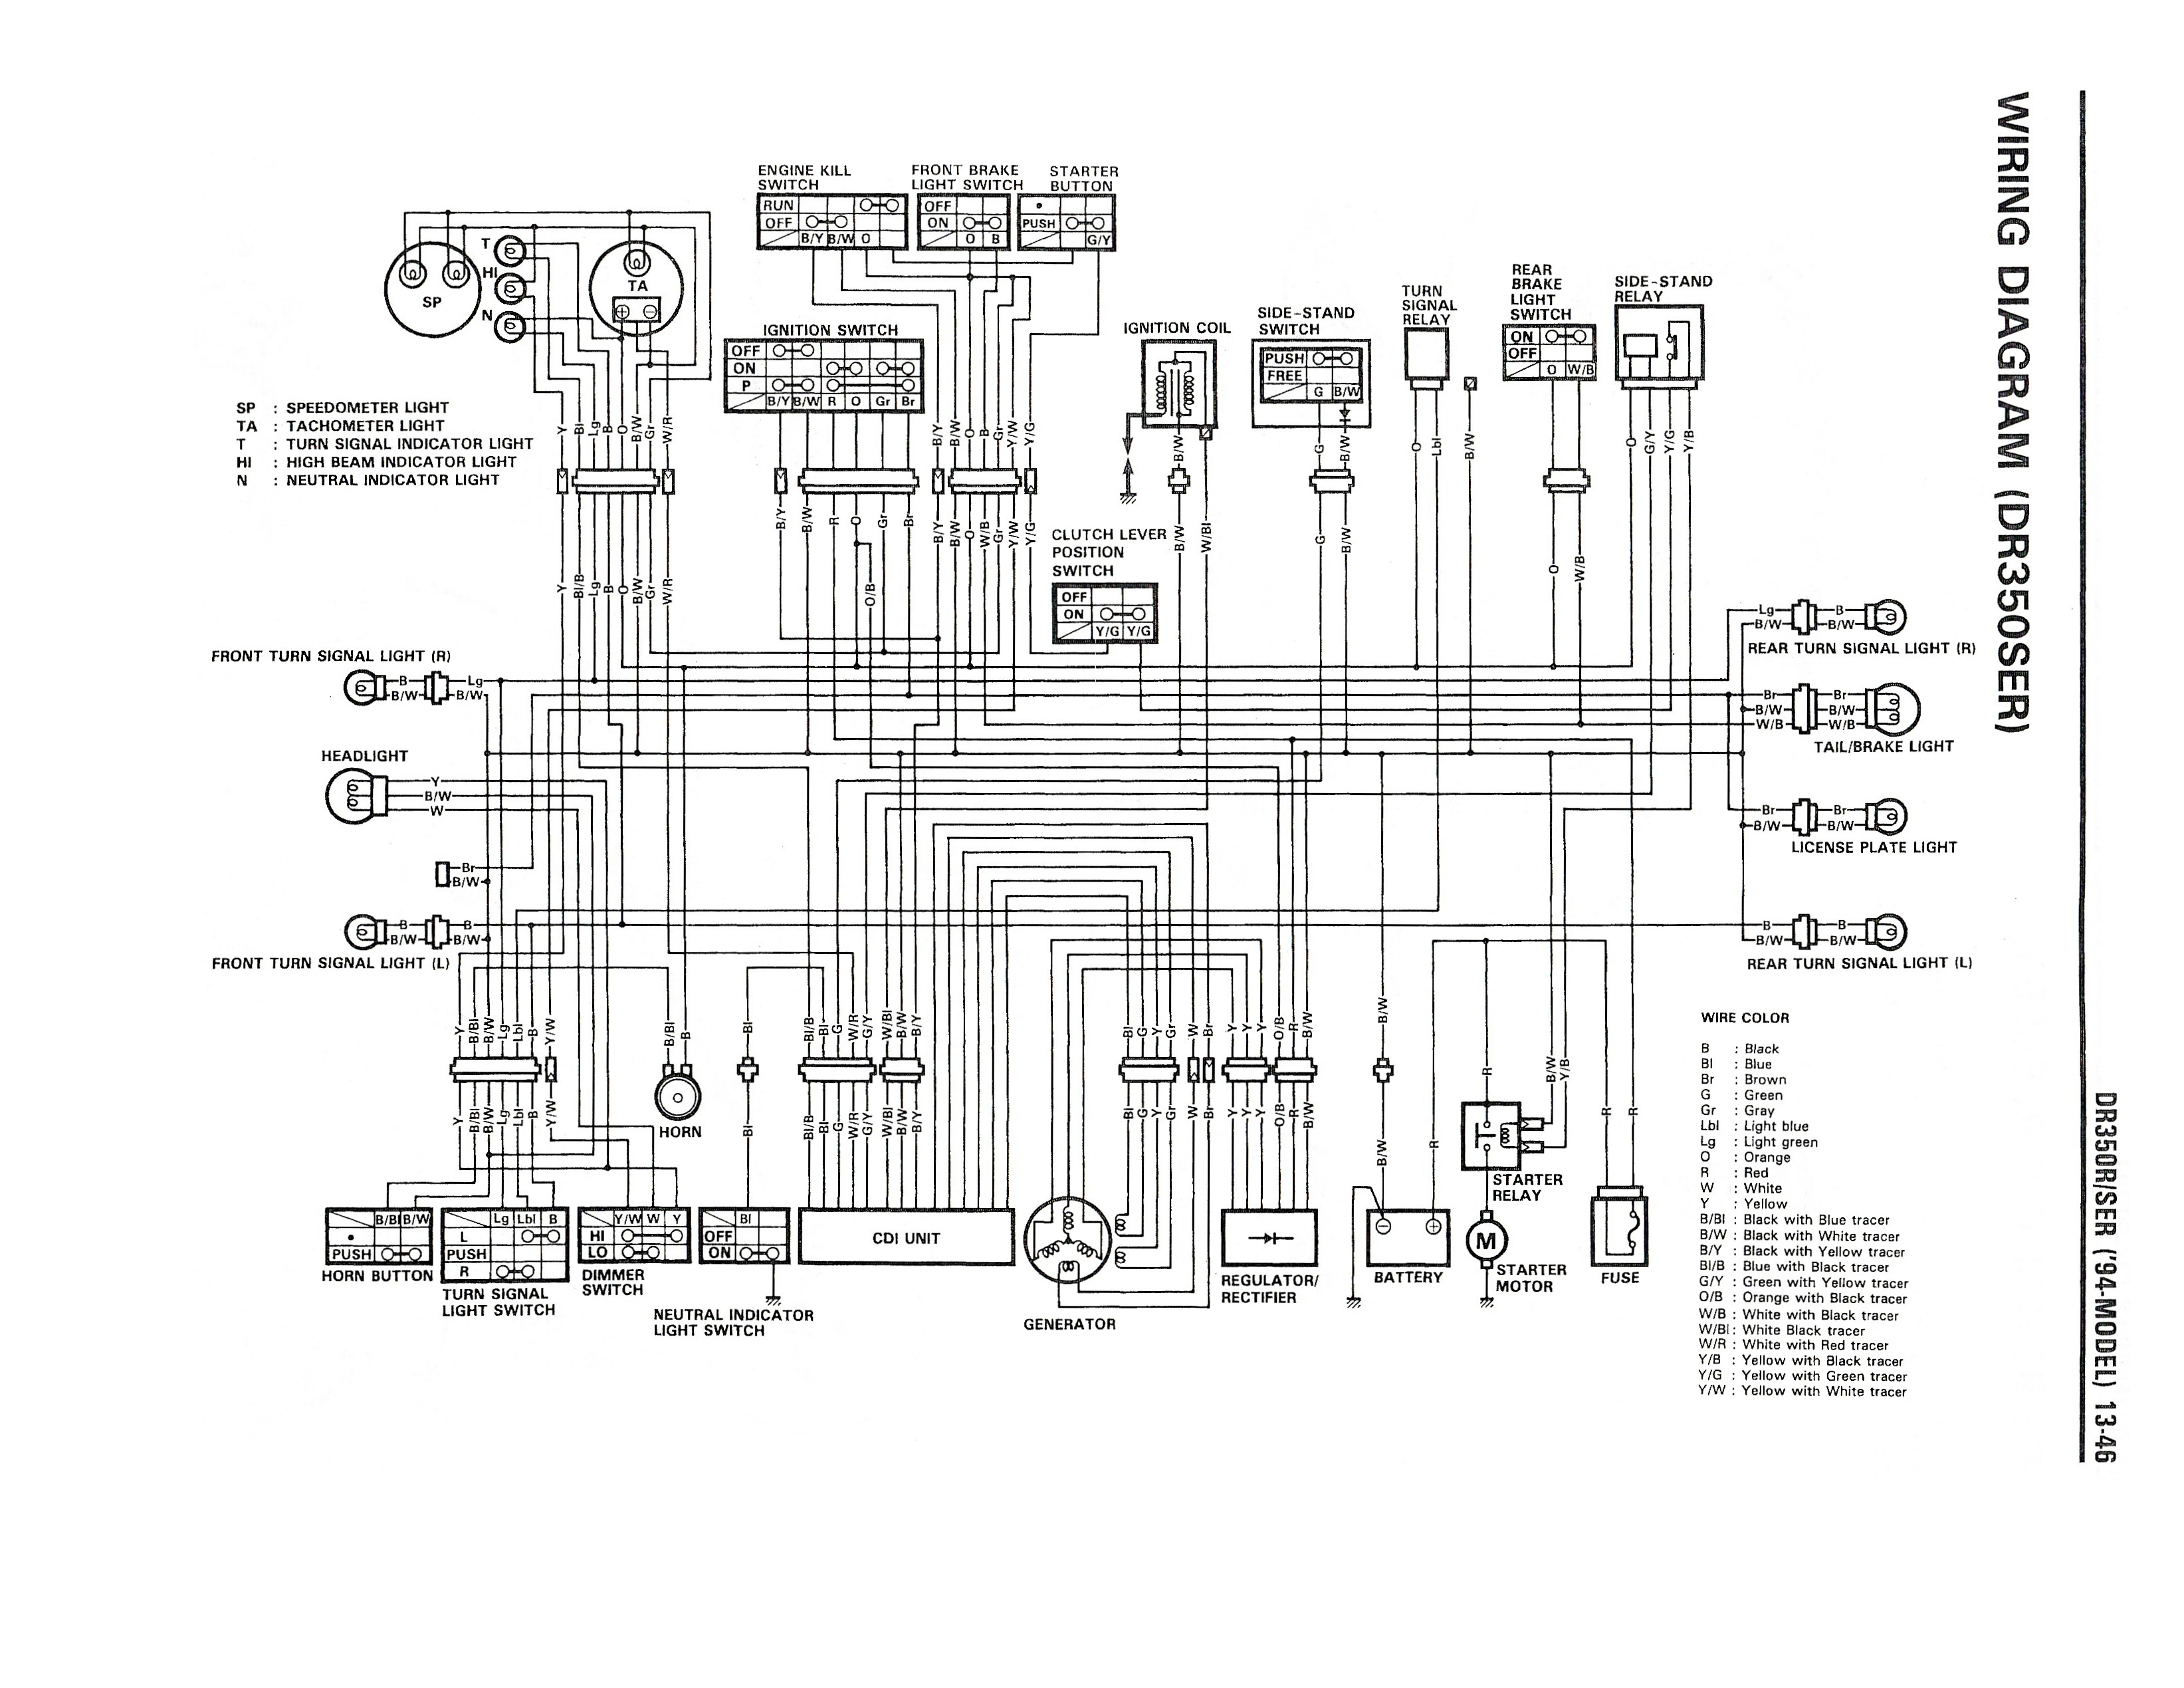 wiring diagram for the dr350 se (1994 and later models) suzuki on Raptor 350 Wiring Diagram for wiring diagram for the dr350 se (1994 and later models) at suzuki dr350 wiring diagram